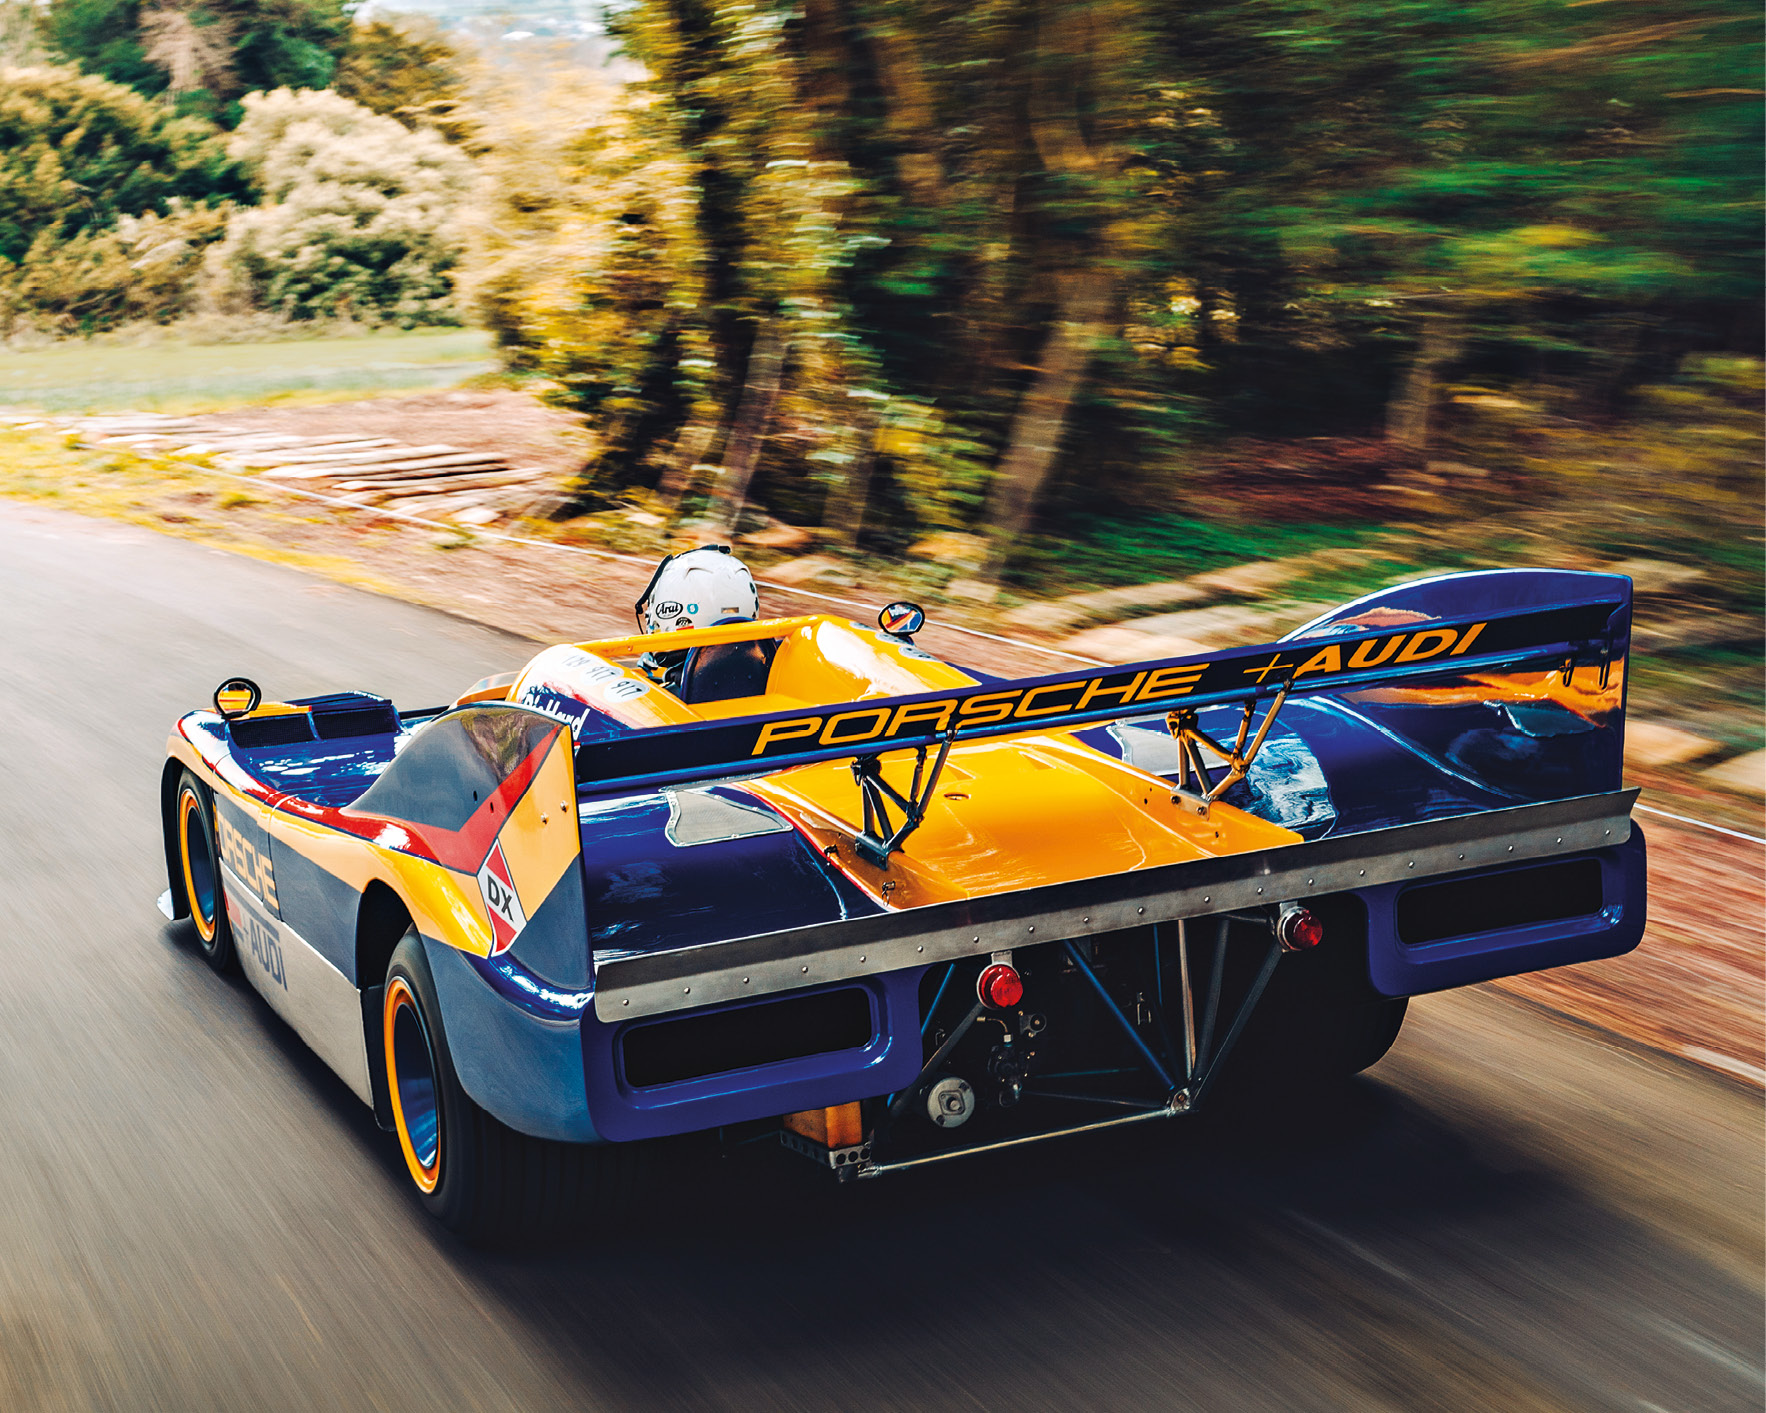 With a huge 5.4-litre flat-12 engine and weighing in at only 850kg, the 917/30 had brutal acceleration